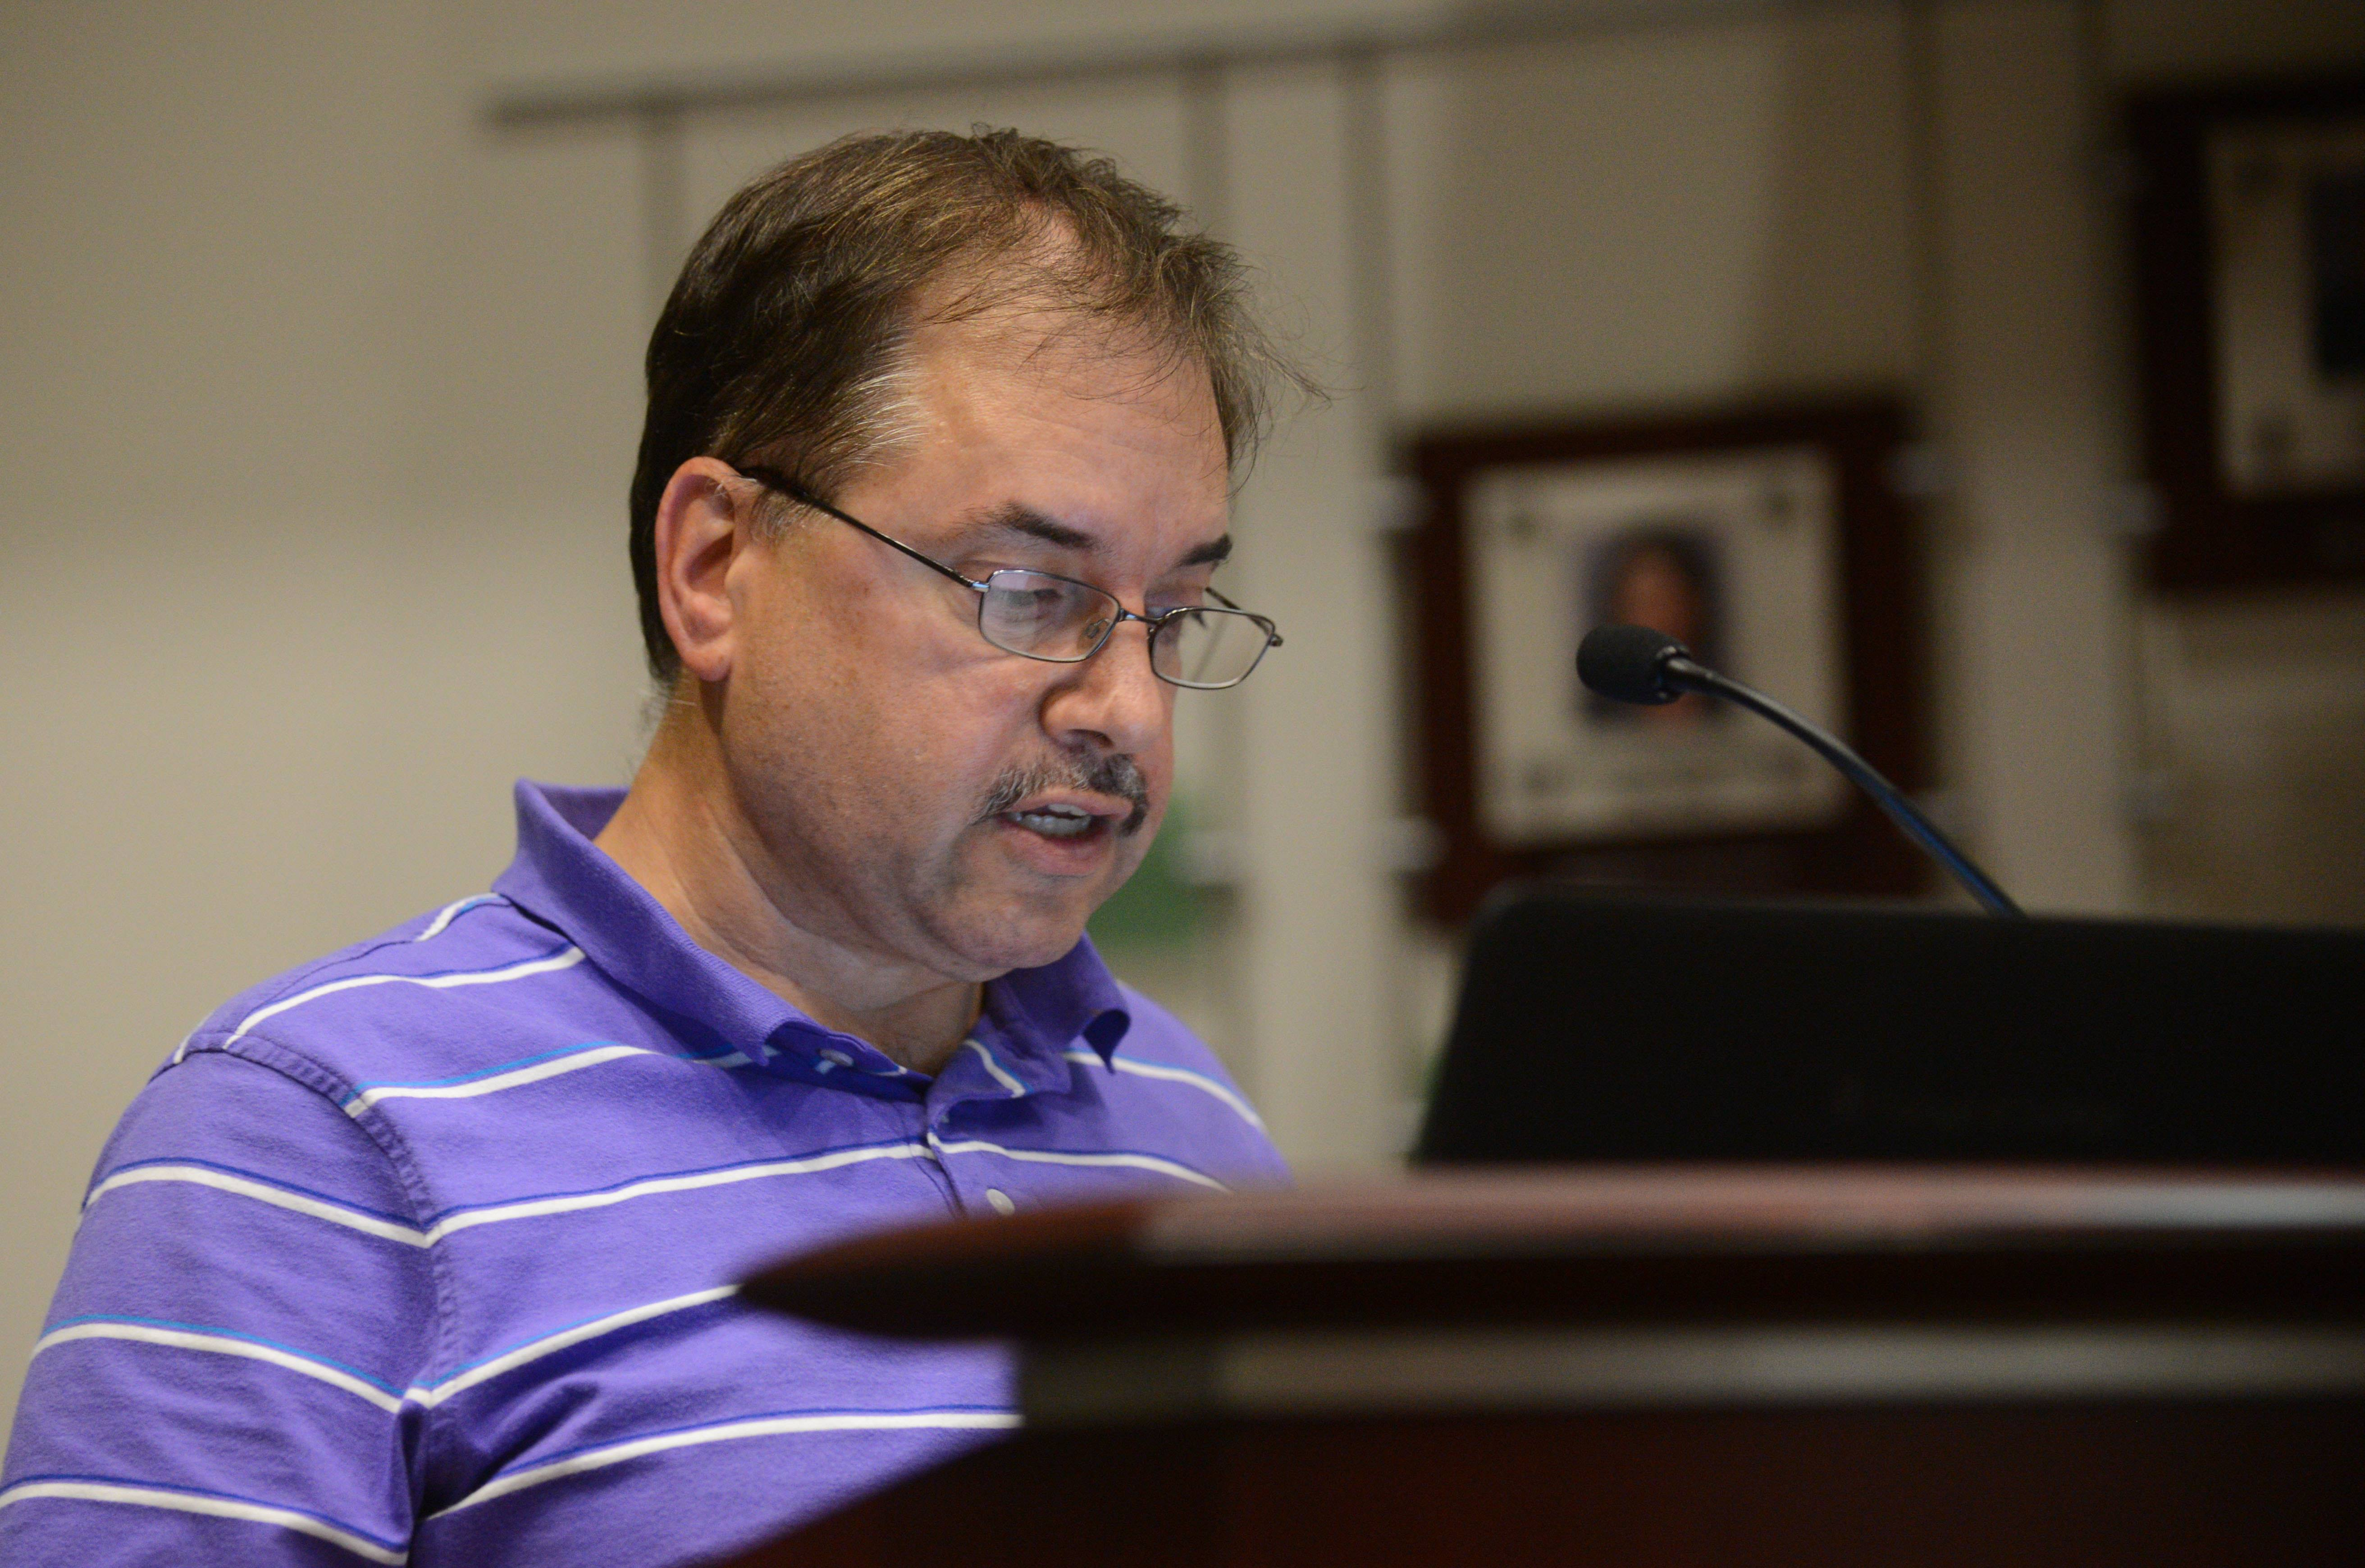 Jeff Cooper of Glen Ellyn voices his opinion about the College of DuPage's handling of a controversial state funding request during Thursdays meeting.